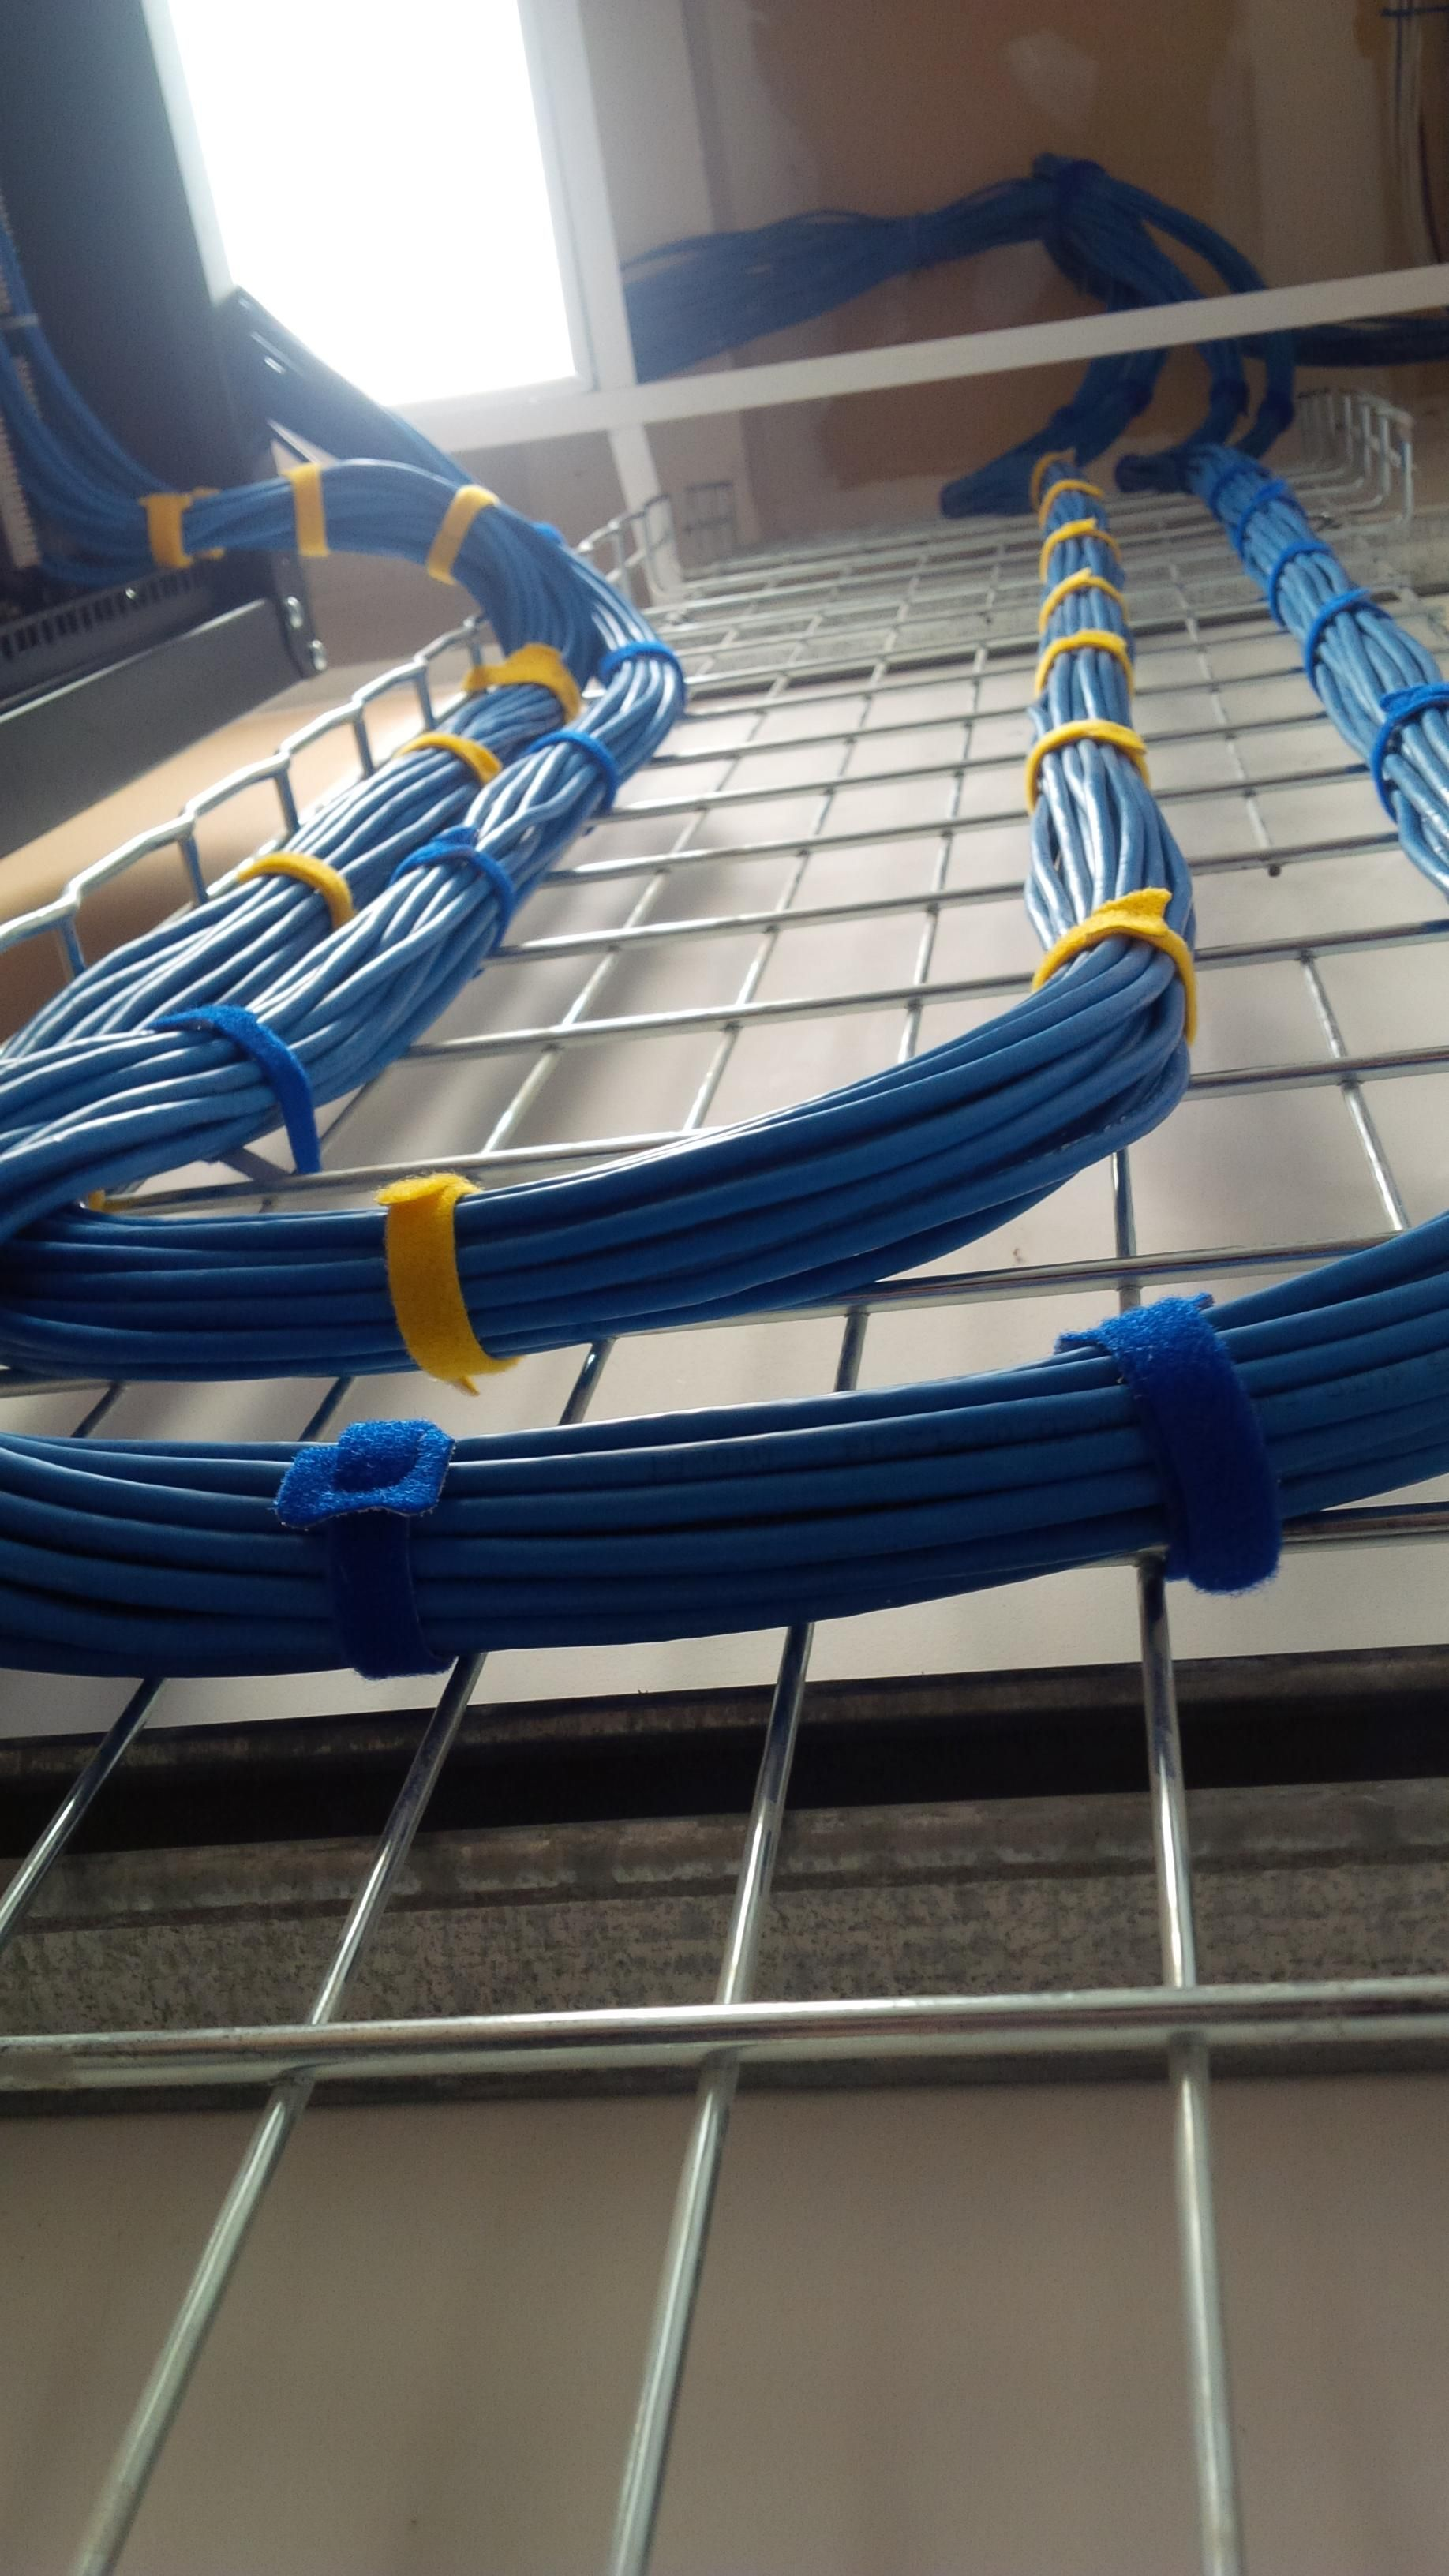 hight resolution of running ethernet cables from the ceiling into the server cabinet